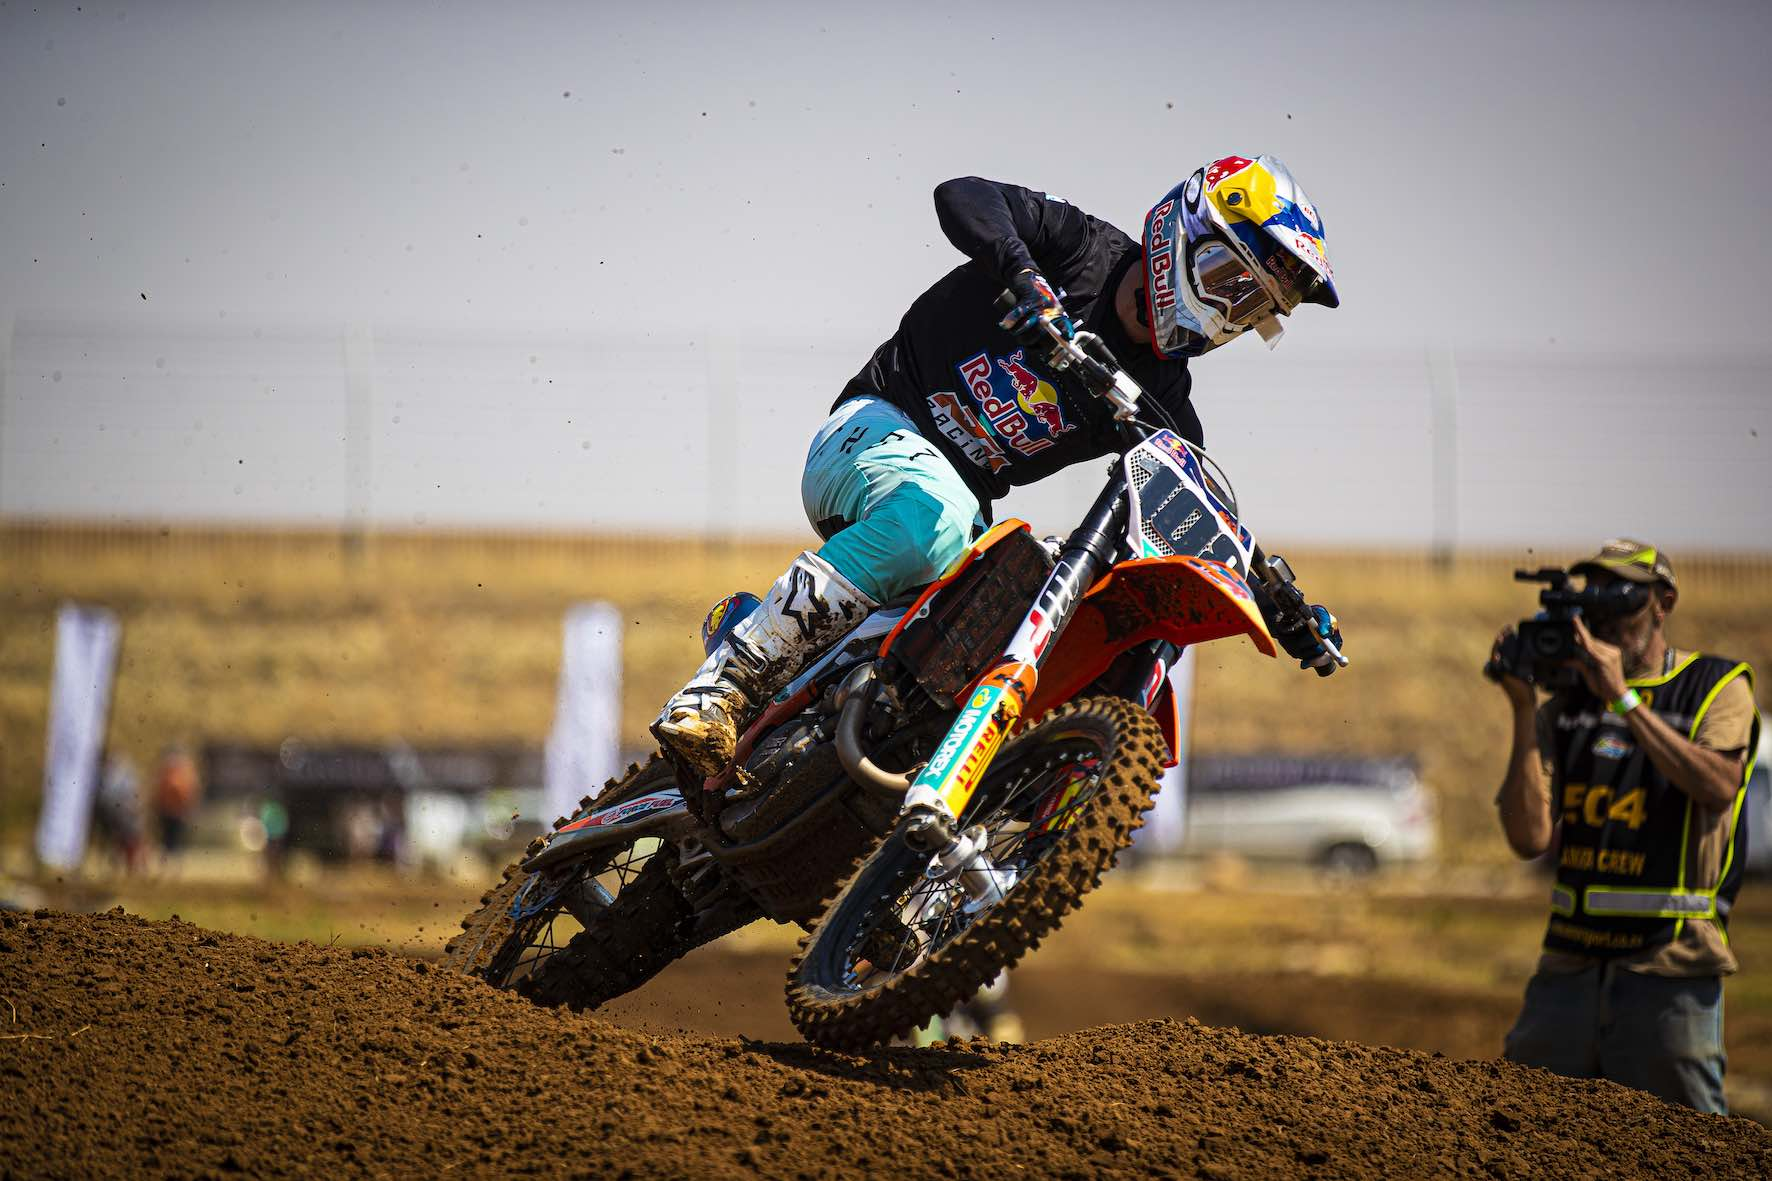 Kerim Fitz-Gerald racing the penultimate round of the 2019 South African Motocross National in Welkom